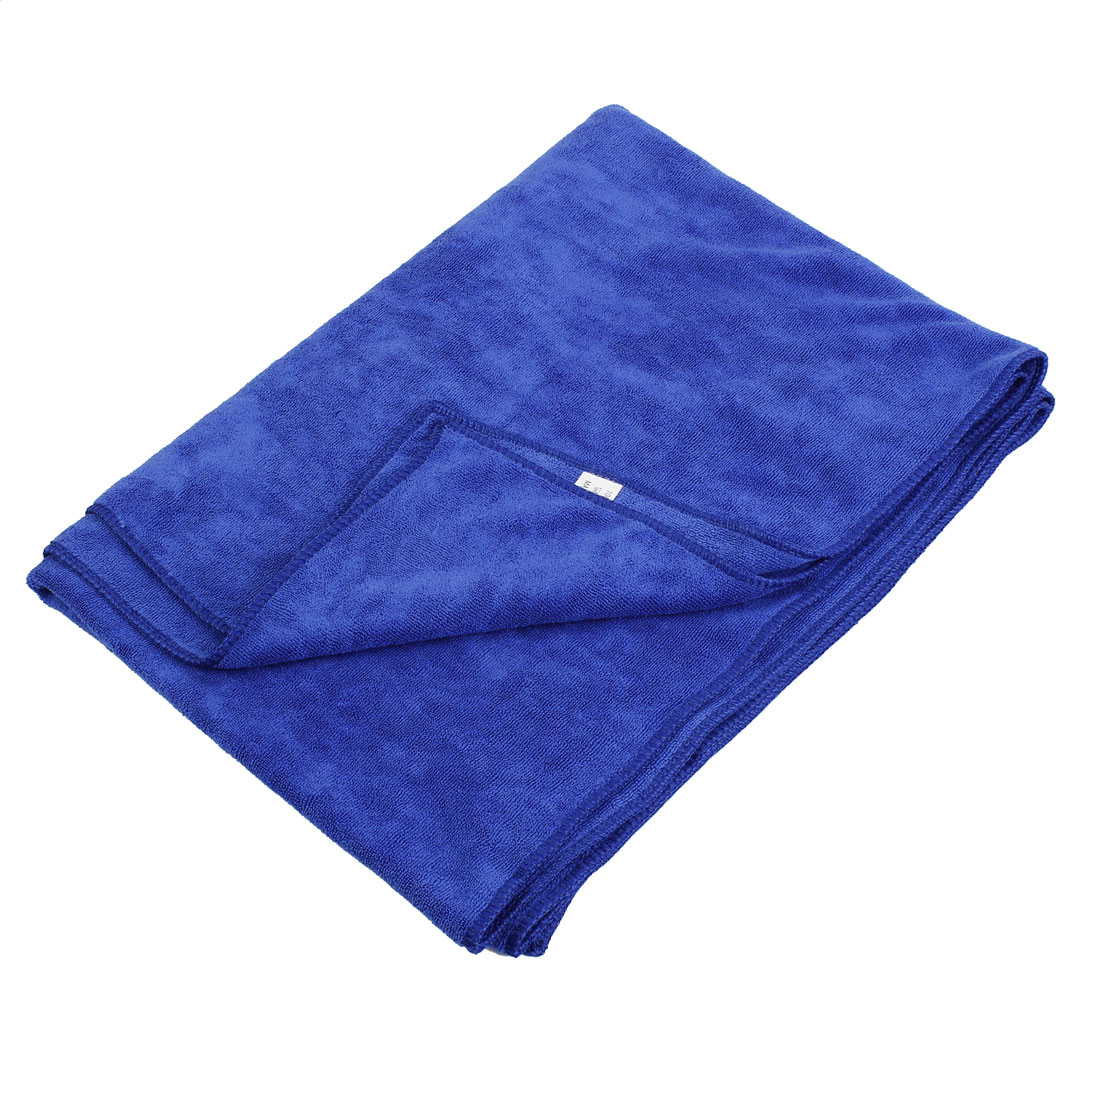 60cm x 160cm Rectangle Microfiber Towel Car Cleaning Cloth Blue